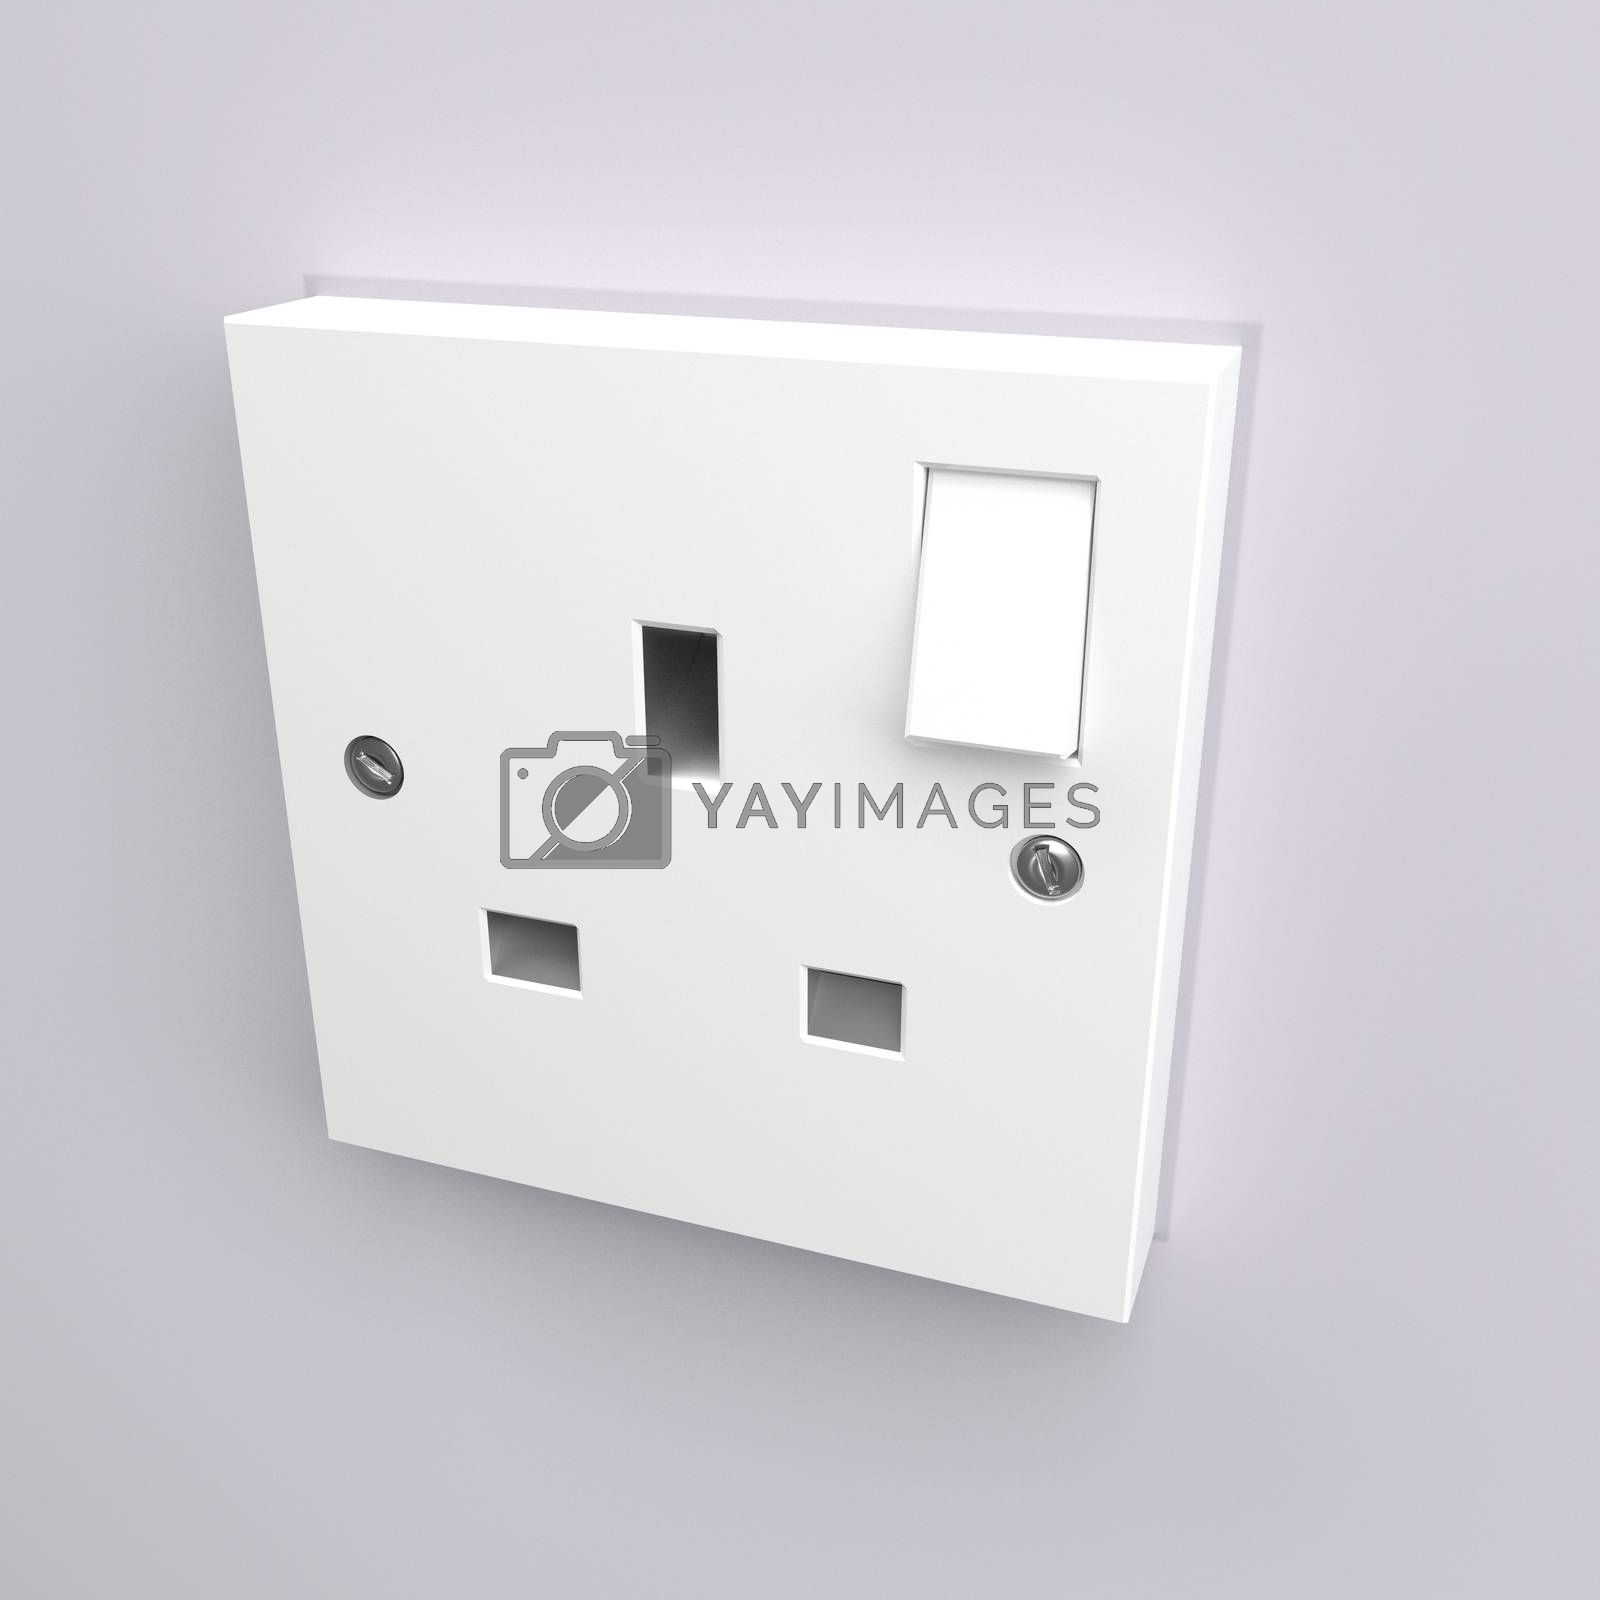 Illustration depicting a wall mounted electrical plug socket.